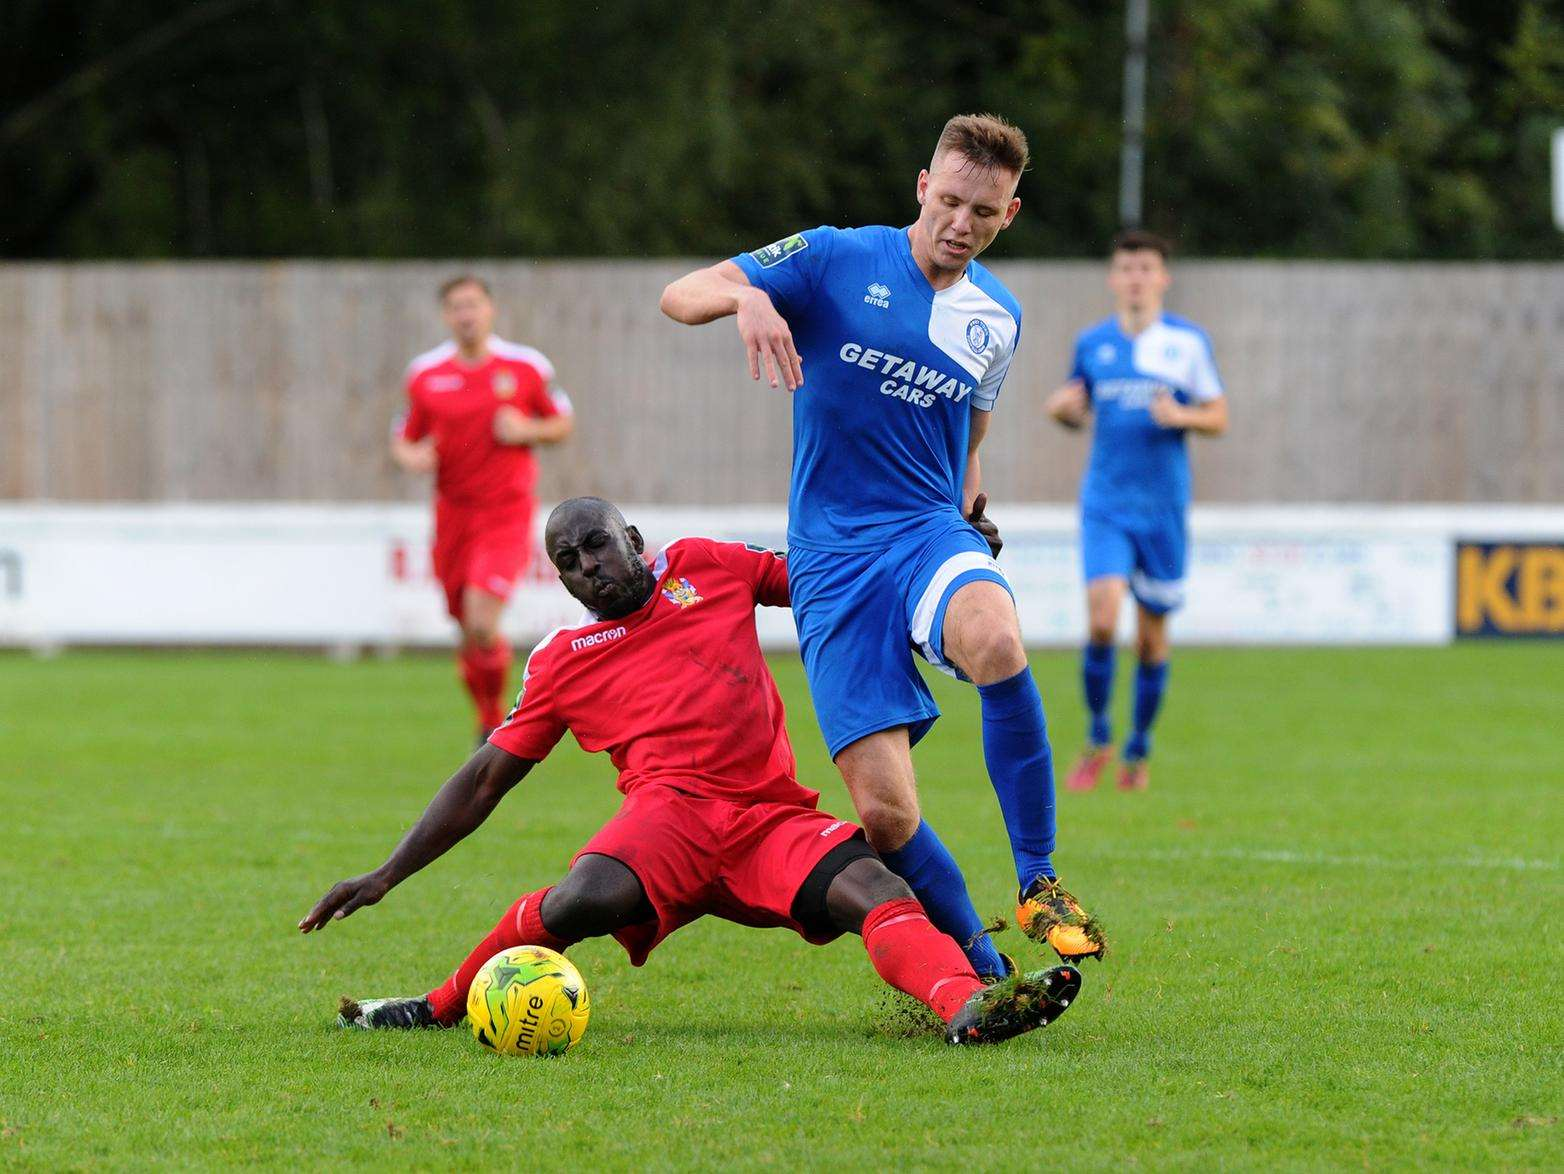 Bury Town v Aveley - Joe White Picture: Mecha Morton